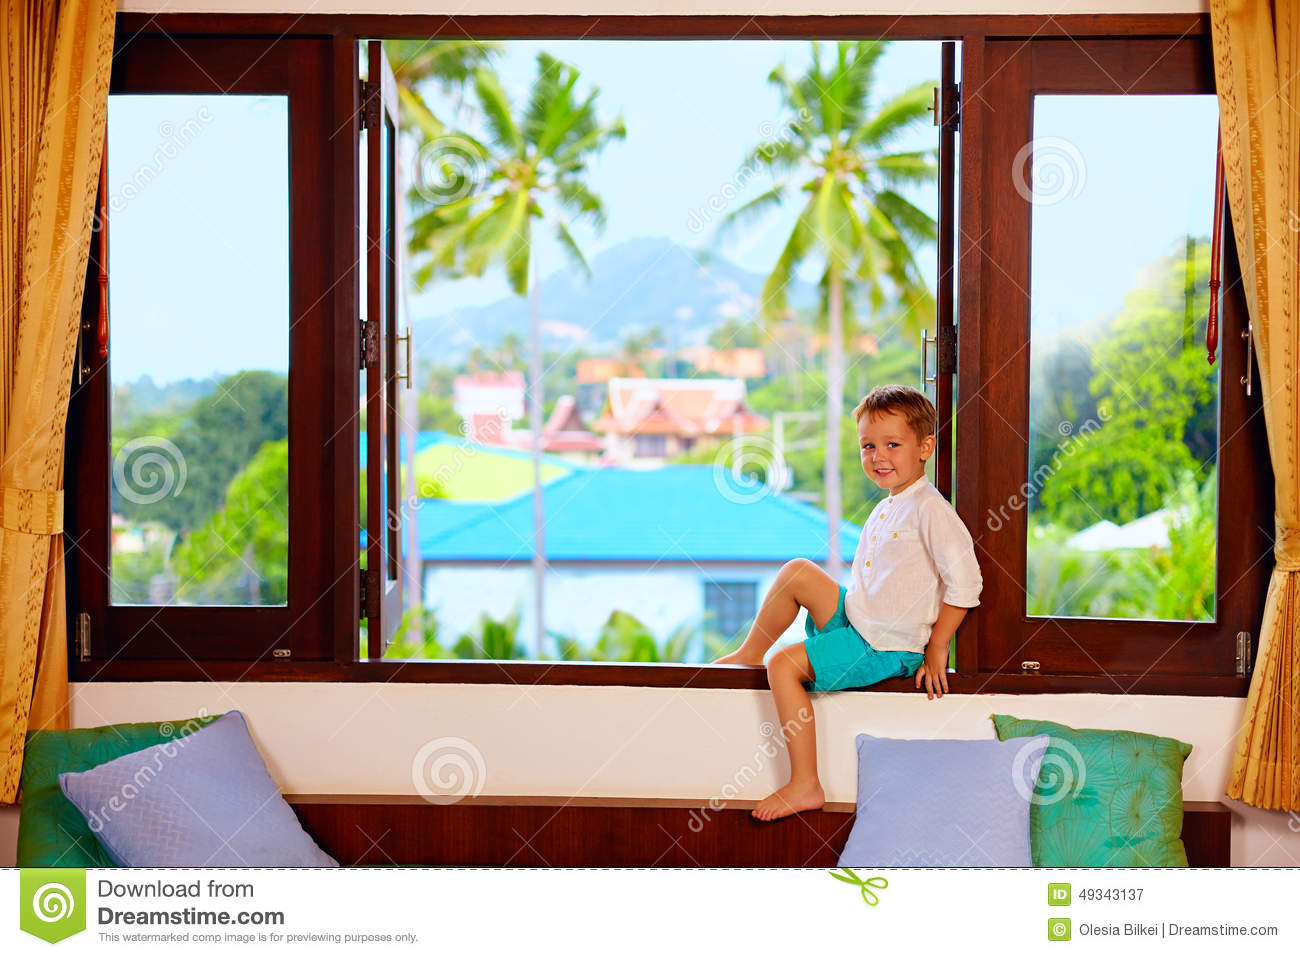 Sit In Window young boy sit on the window sill stock photo - image: 42892691